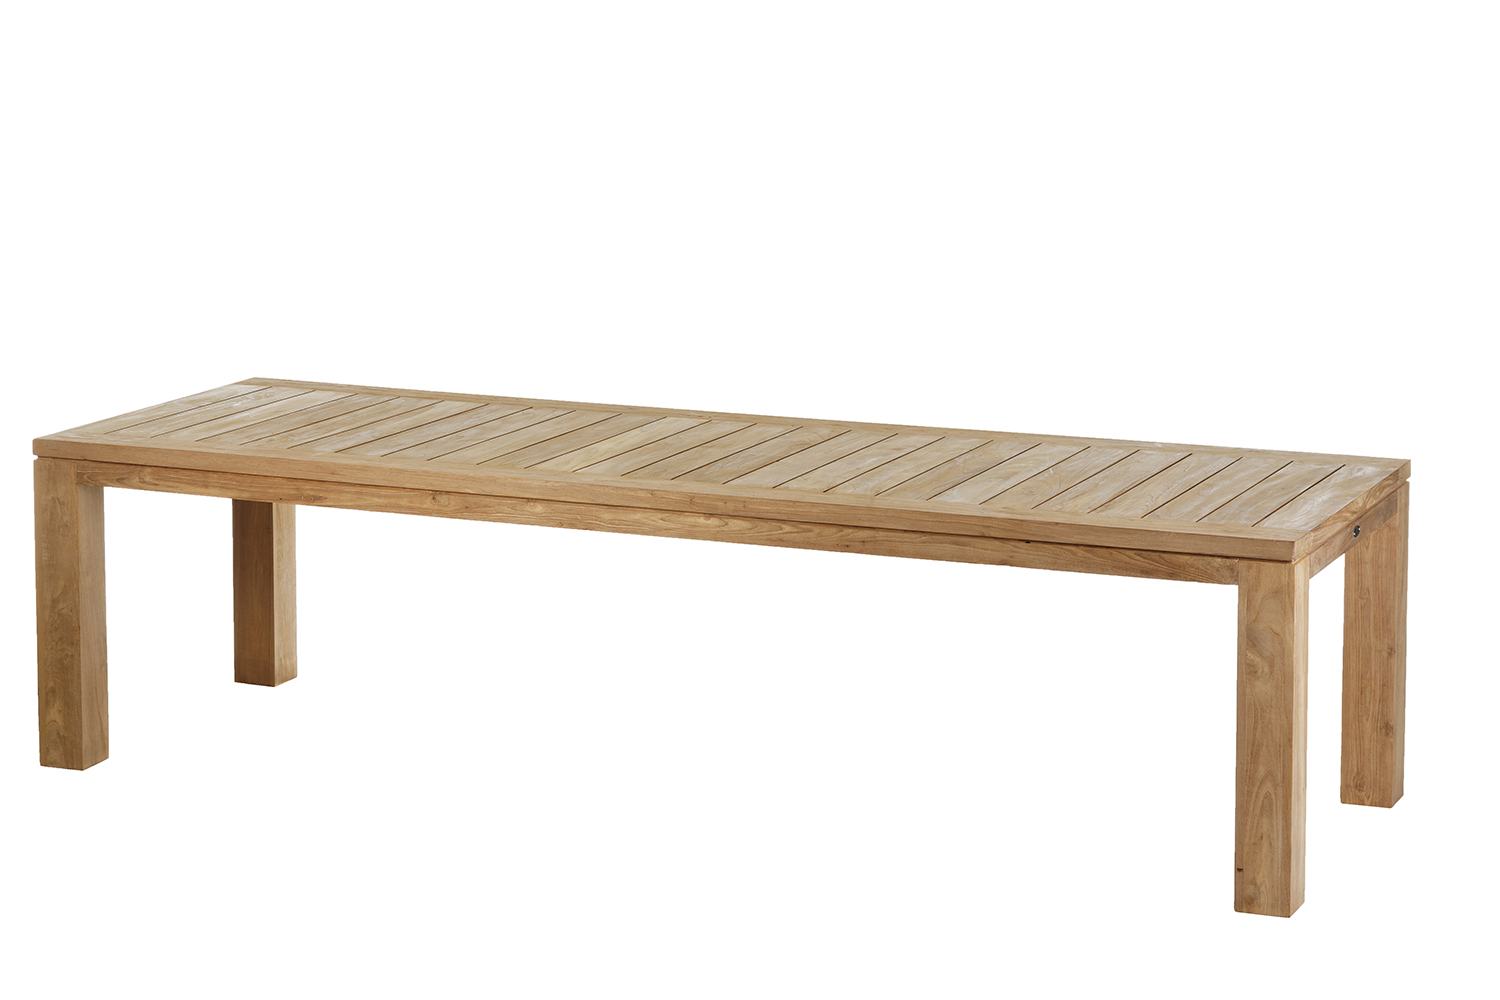 Chateau Tisch 300 cm Recycled Teak Natur